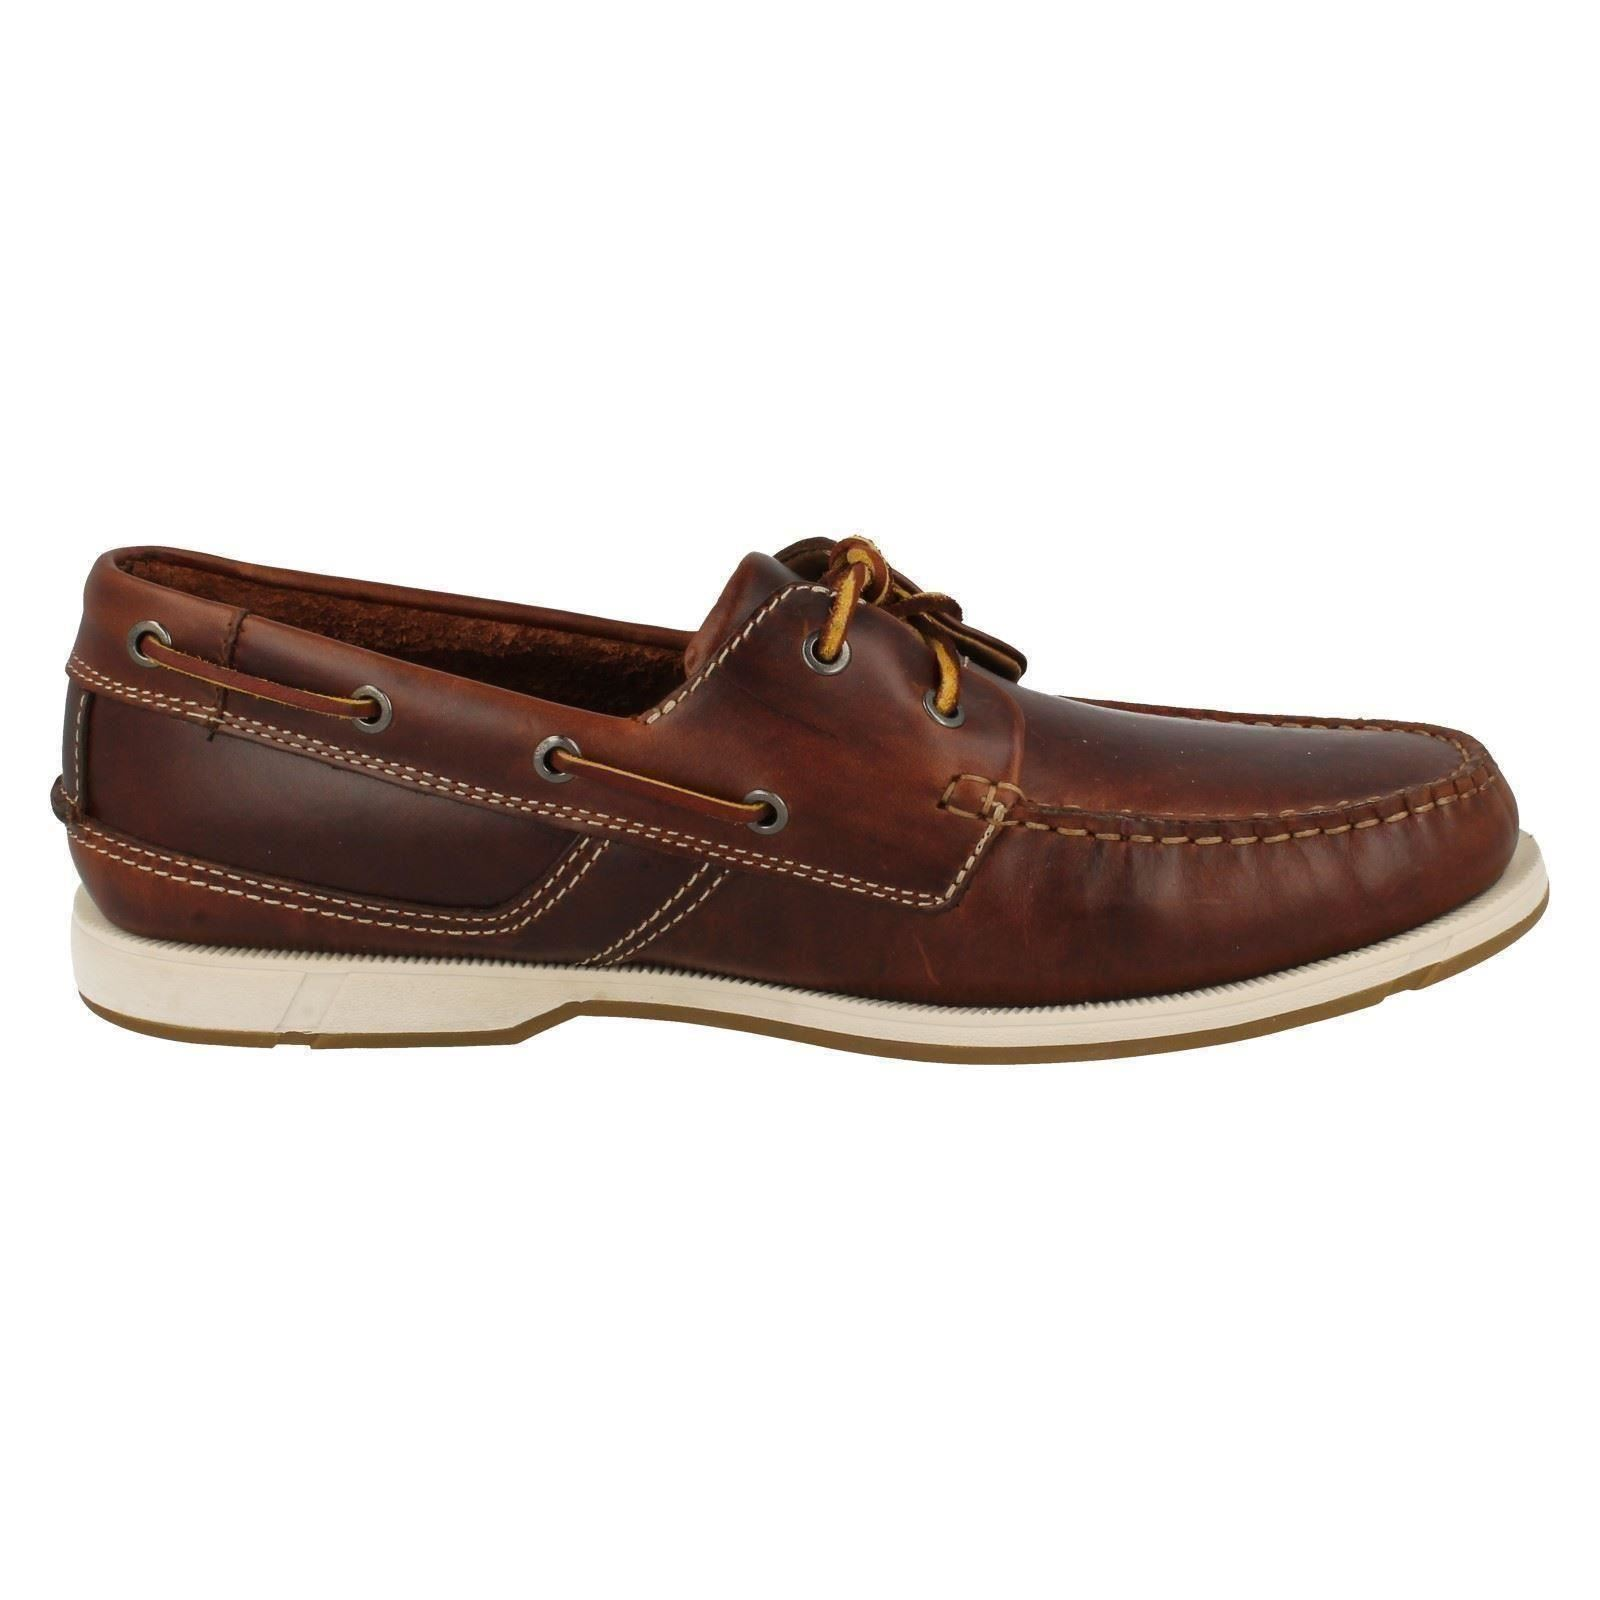 Mens Clarks Deck Style Smart/Casual Shoes Fulmen Row